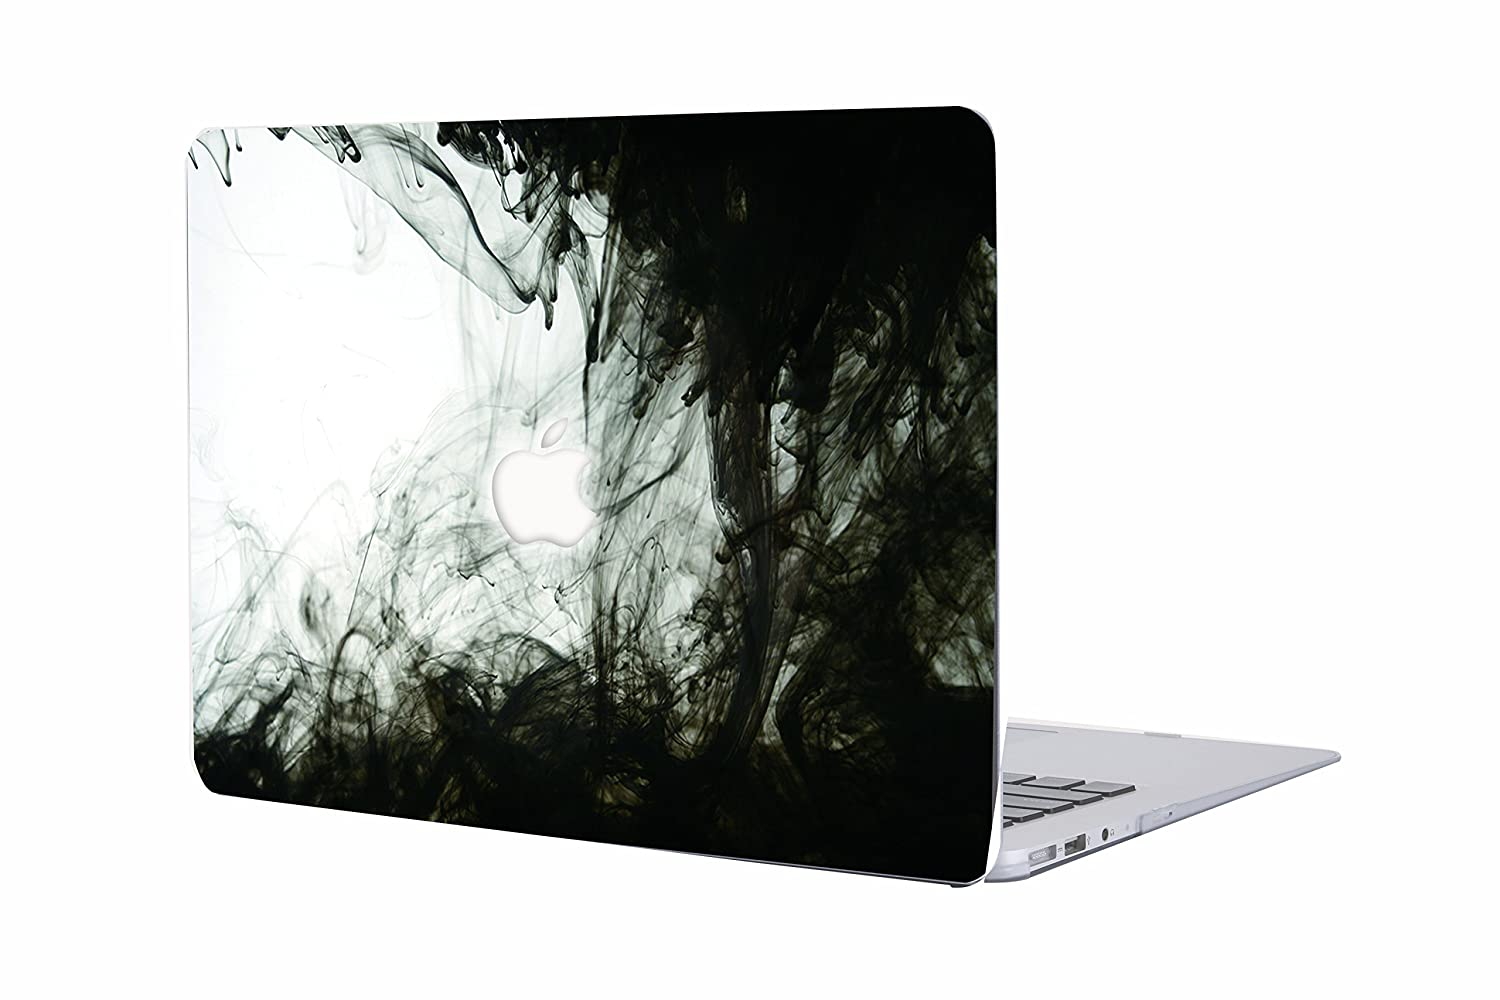 Amazon.com: MacBook Air 13 inch Case - AQYLQ MacBook Air ...